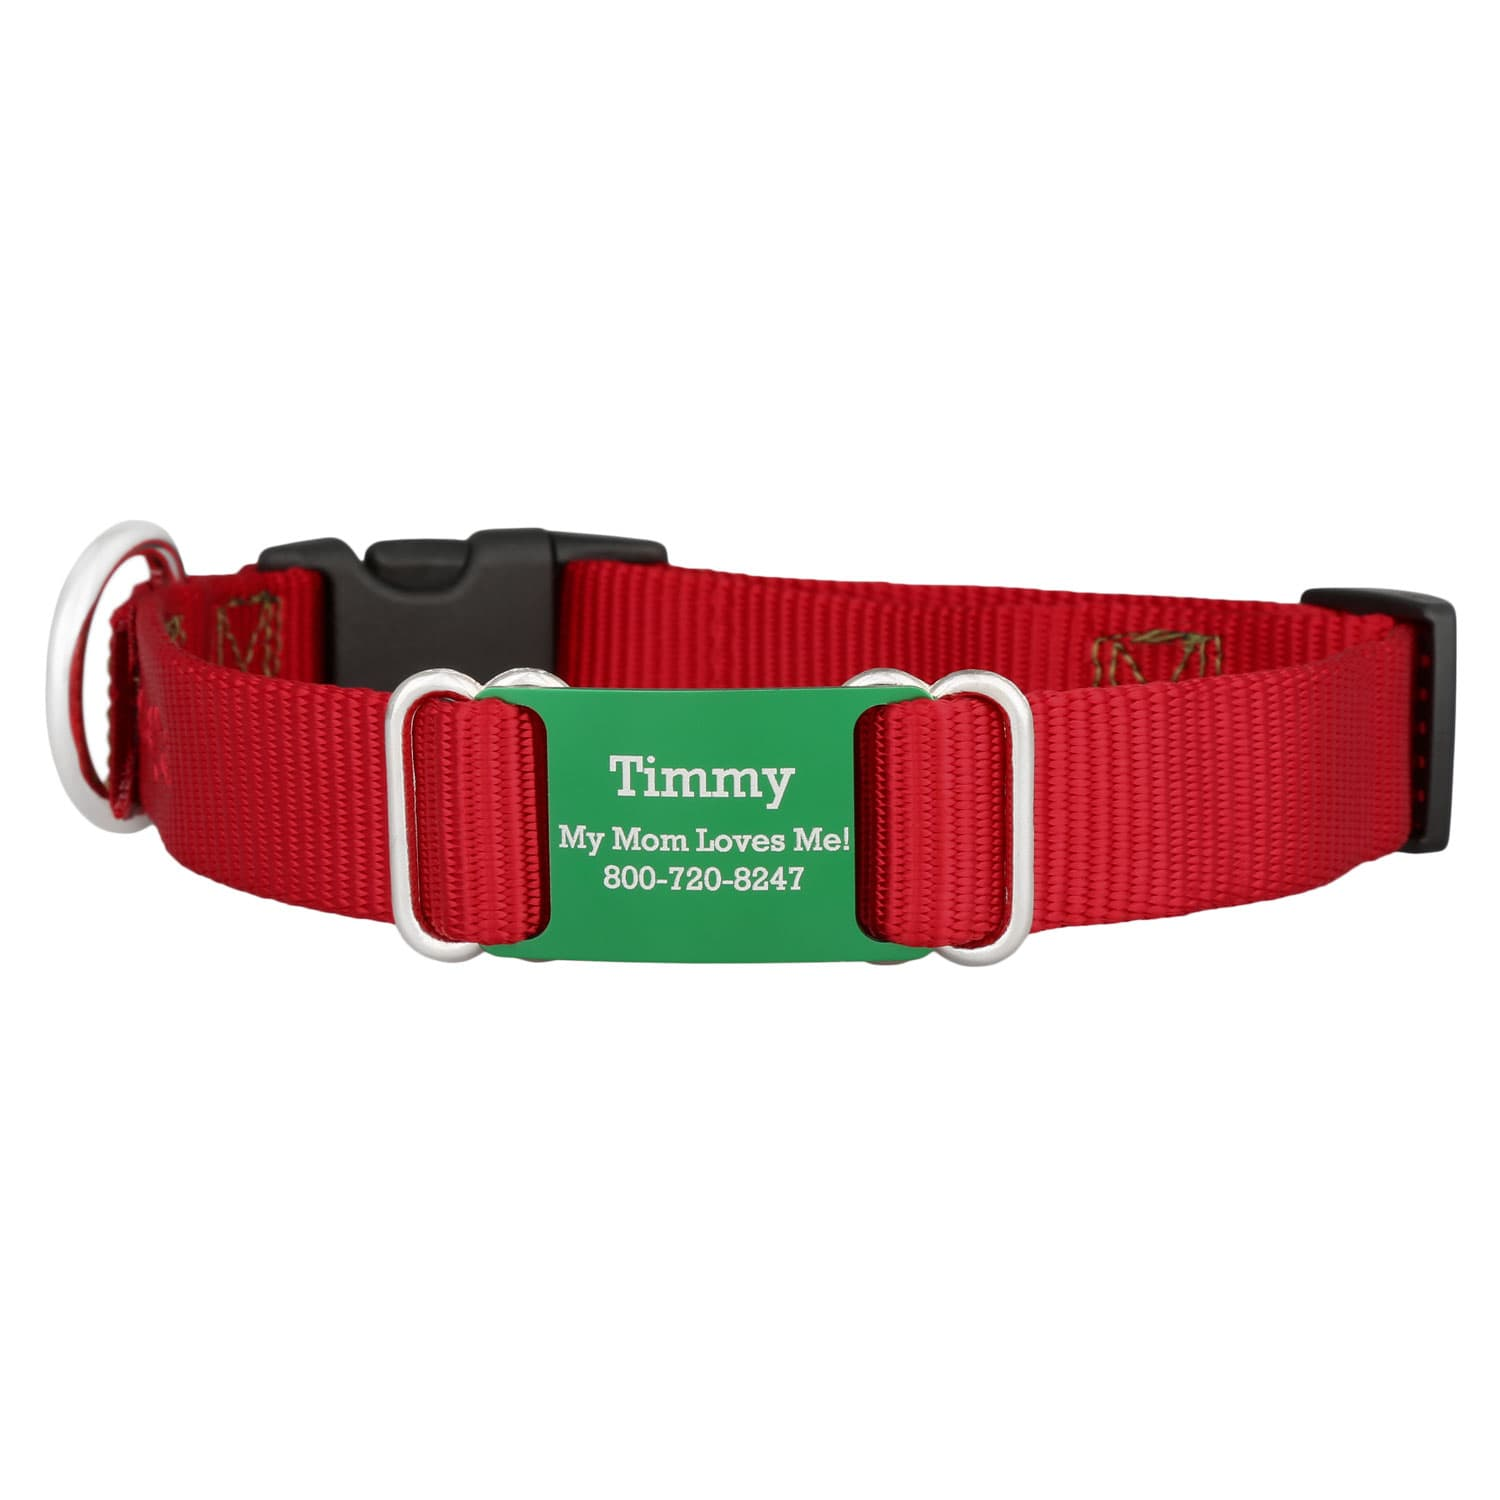 Holiday Nylon ScruffTag Personalized Dog Collars - Red with Green Plate